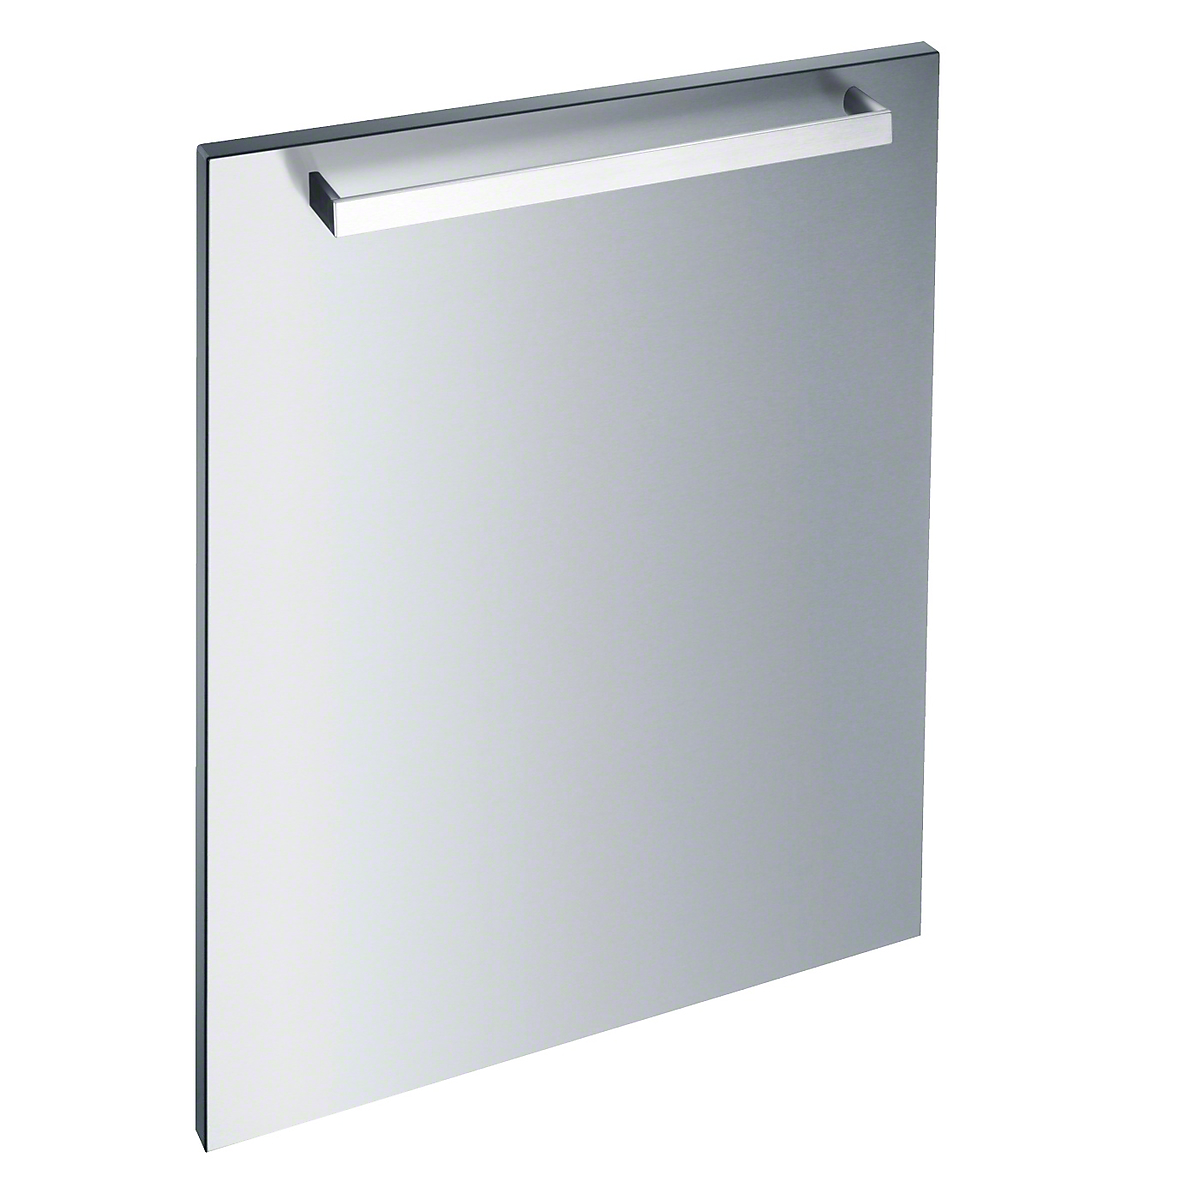 Int. front panel: W x H, 24 x 28 inClean Touch Steel™